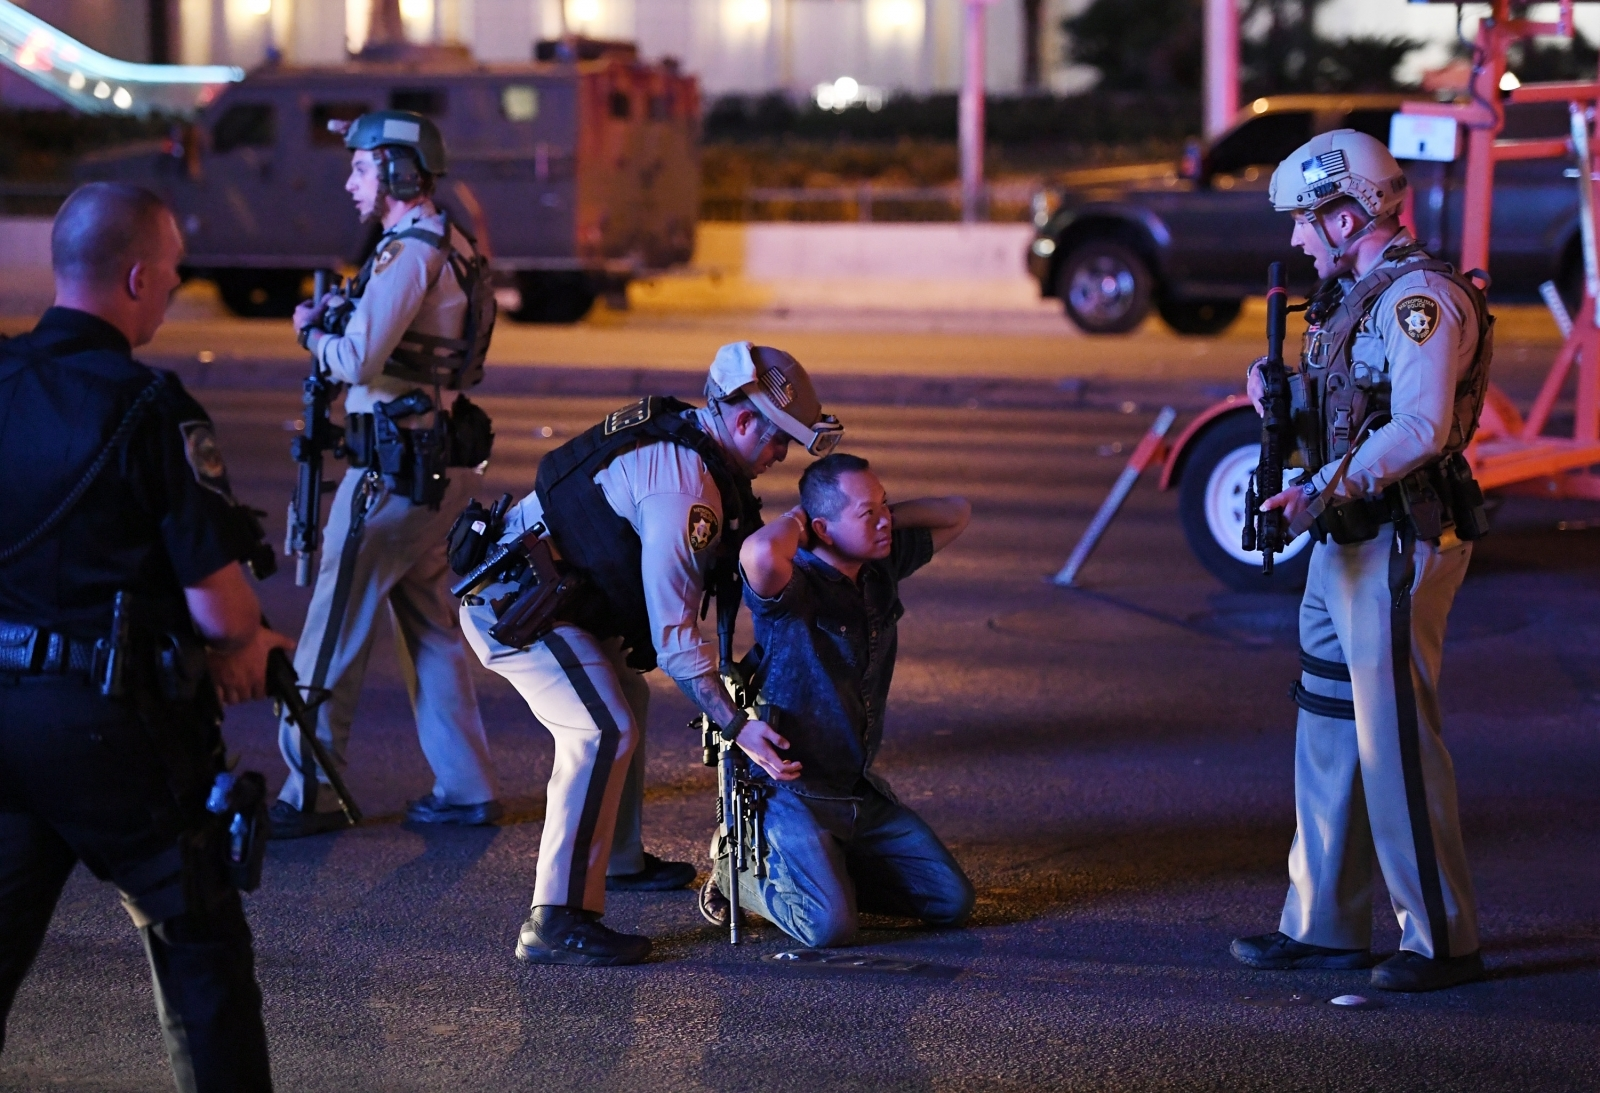 First Pictures And Video From Las Vegas Mass Shooting At